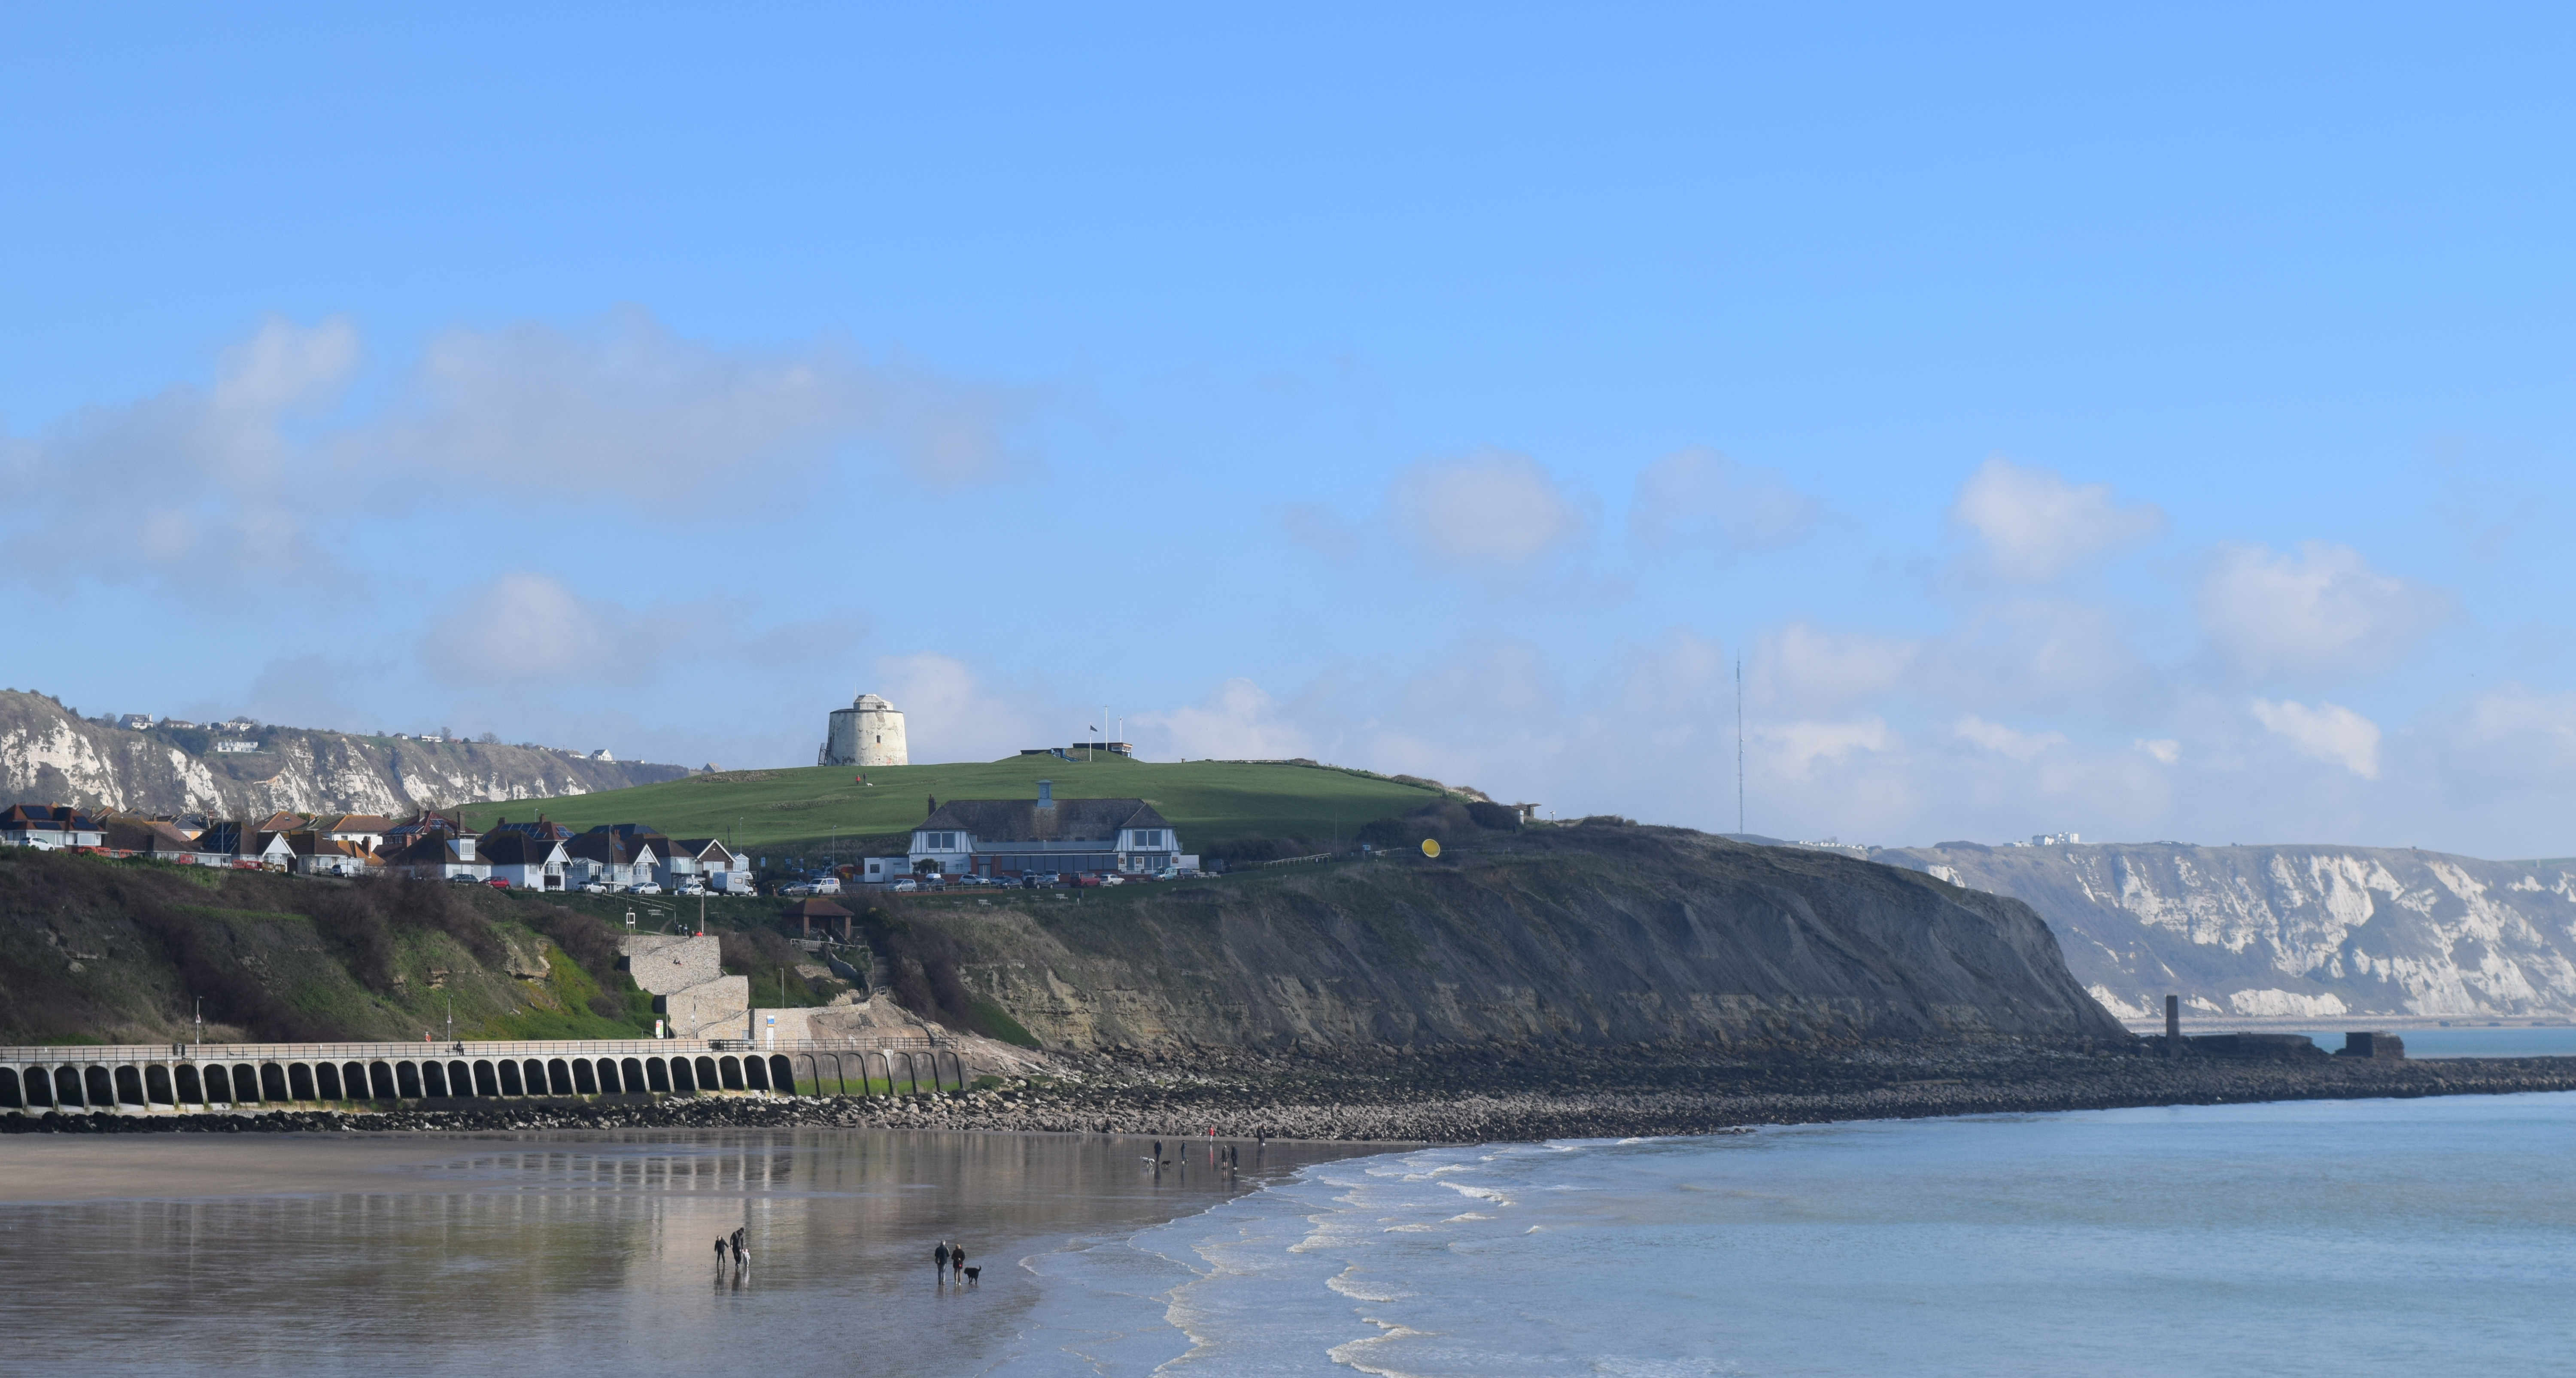 Folkestone Martello Tower